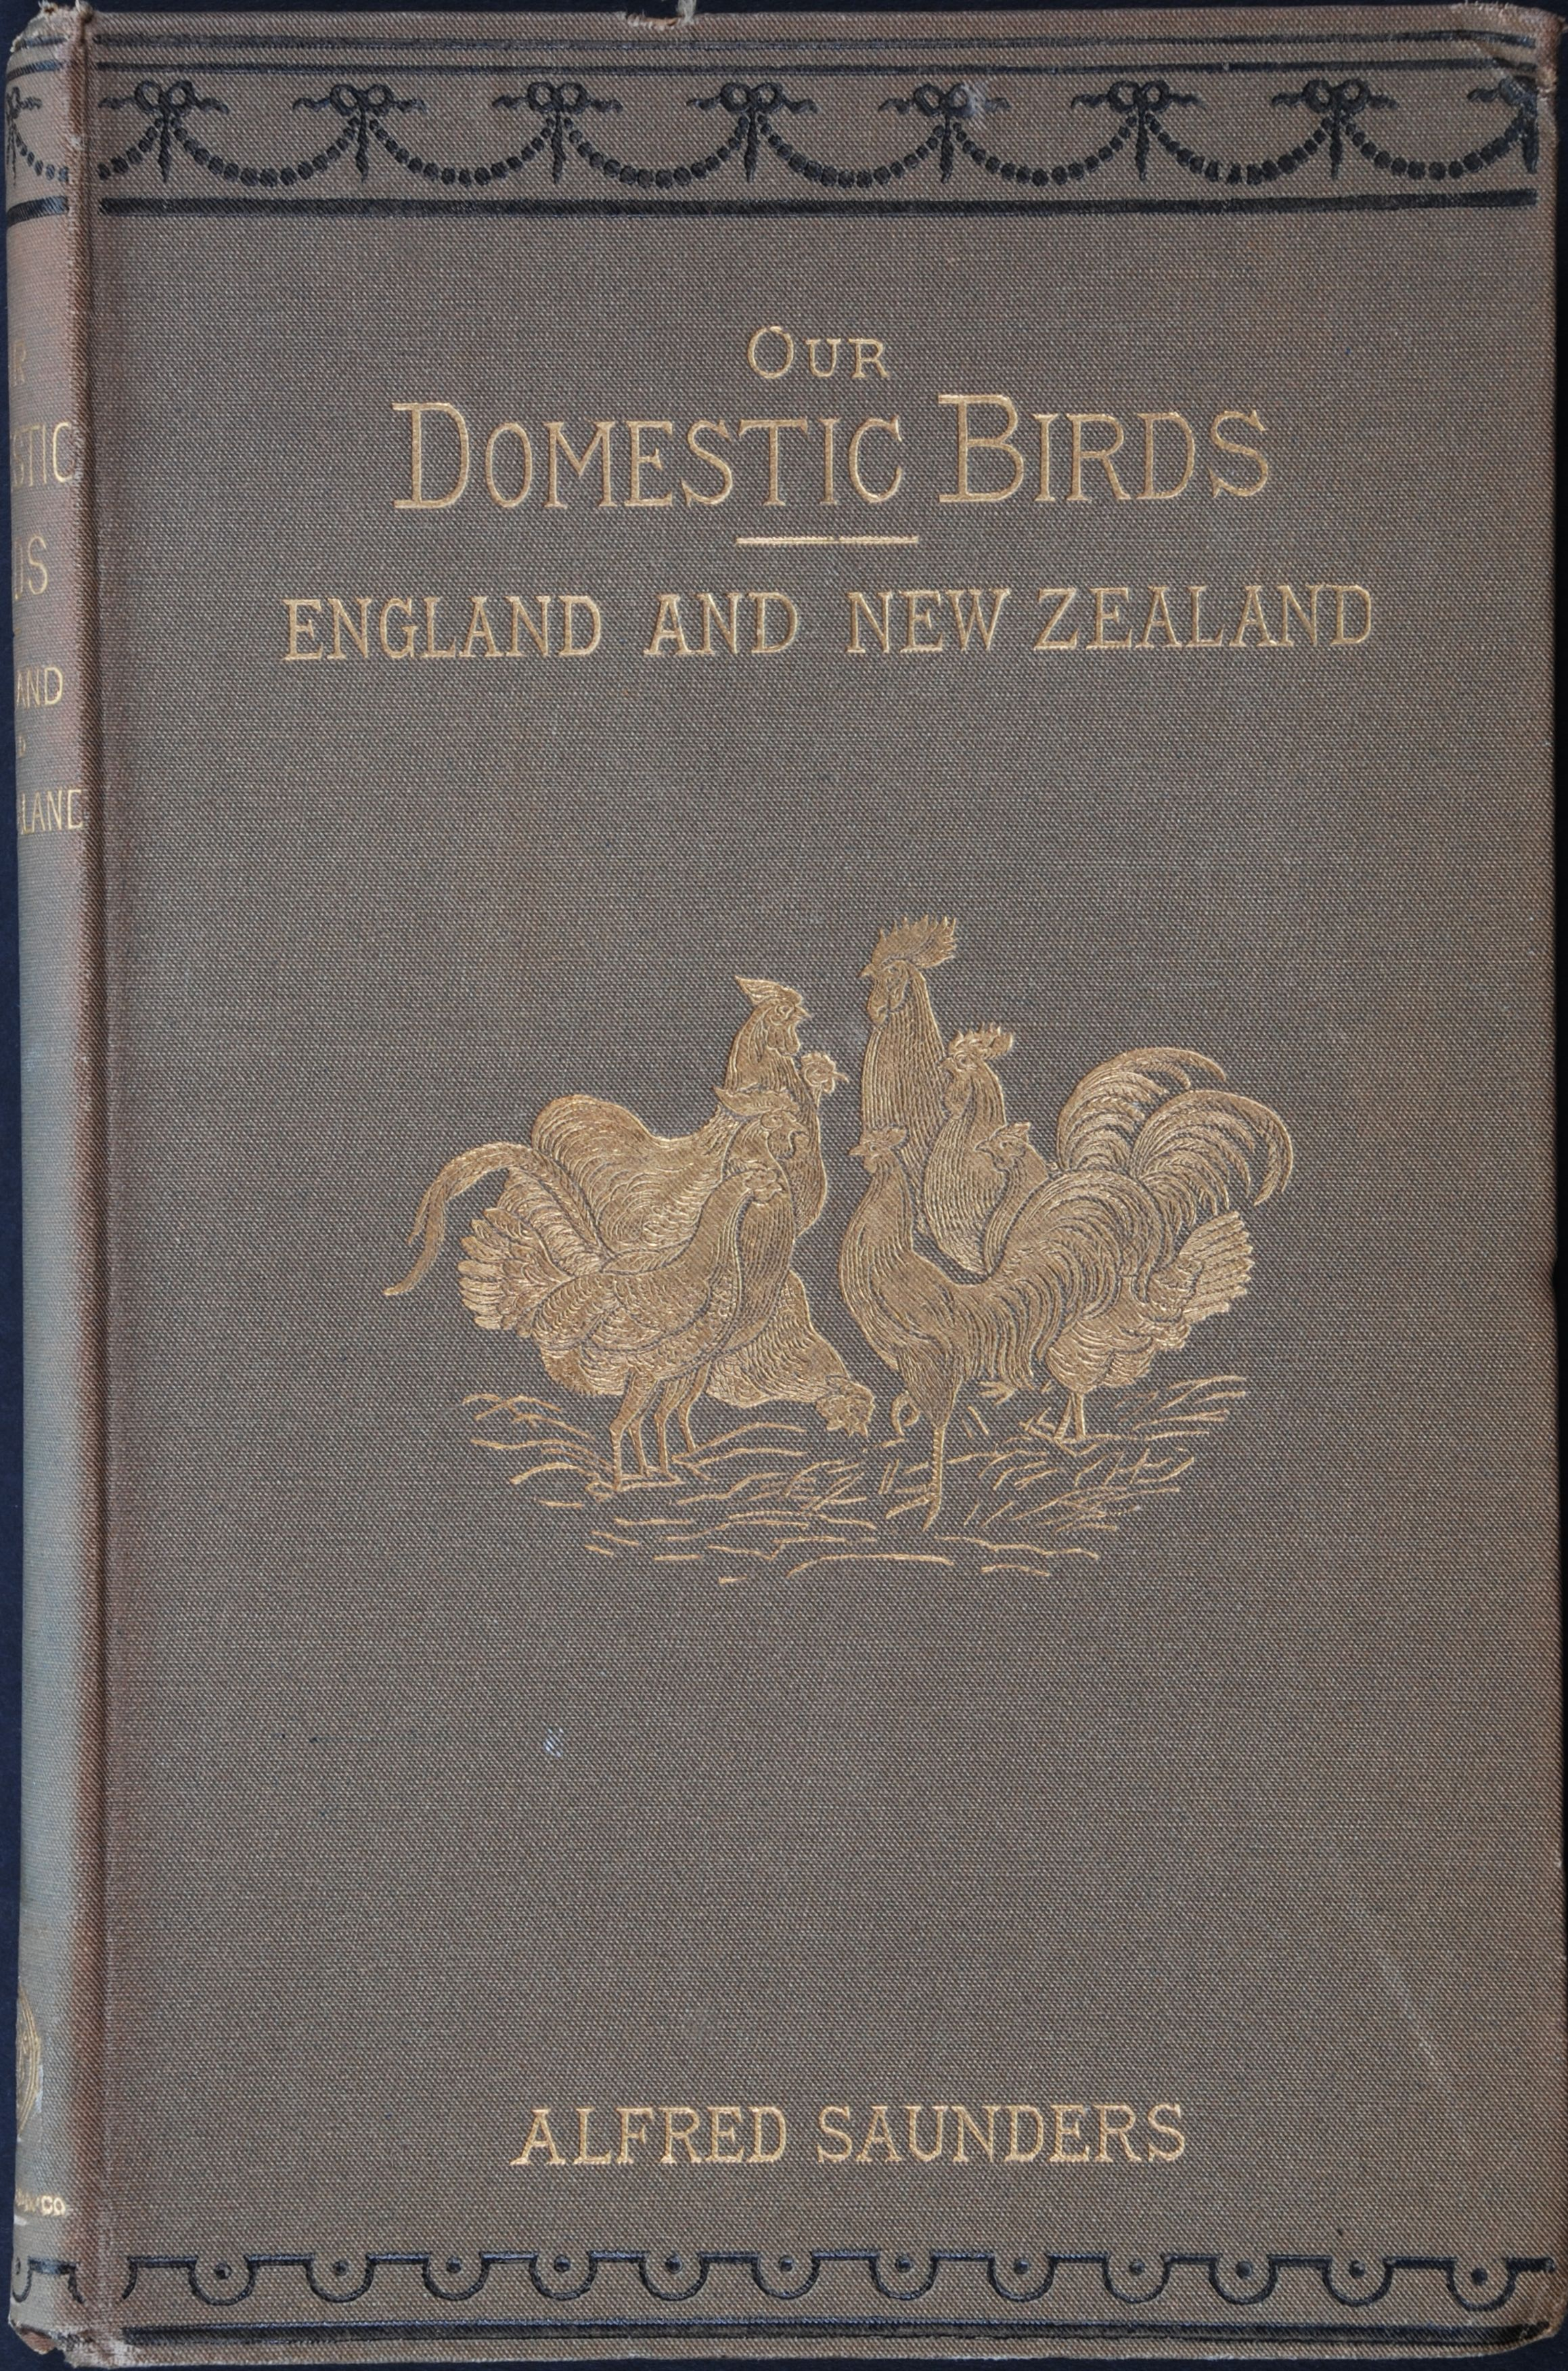 Alfred Saunders. Our Domestic Birds: a practical poultry book for England and New Zealand. London: Sampson Low, Marston, Searle and Rivington, 1883.